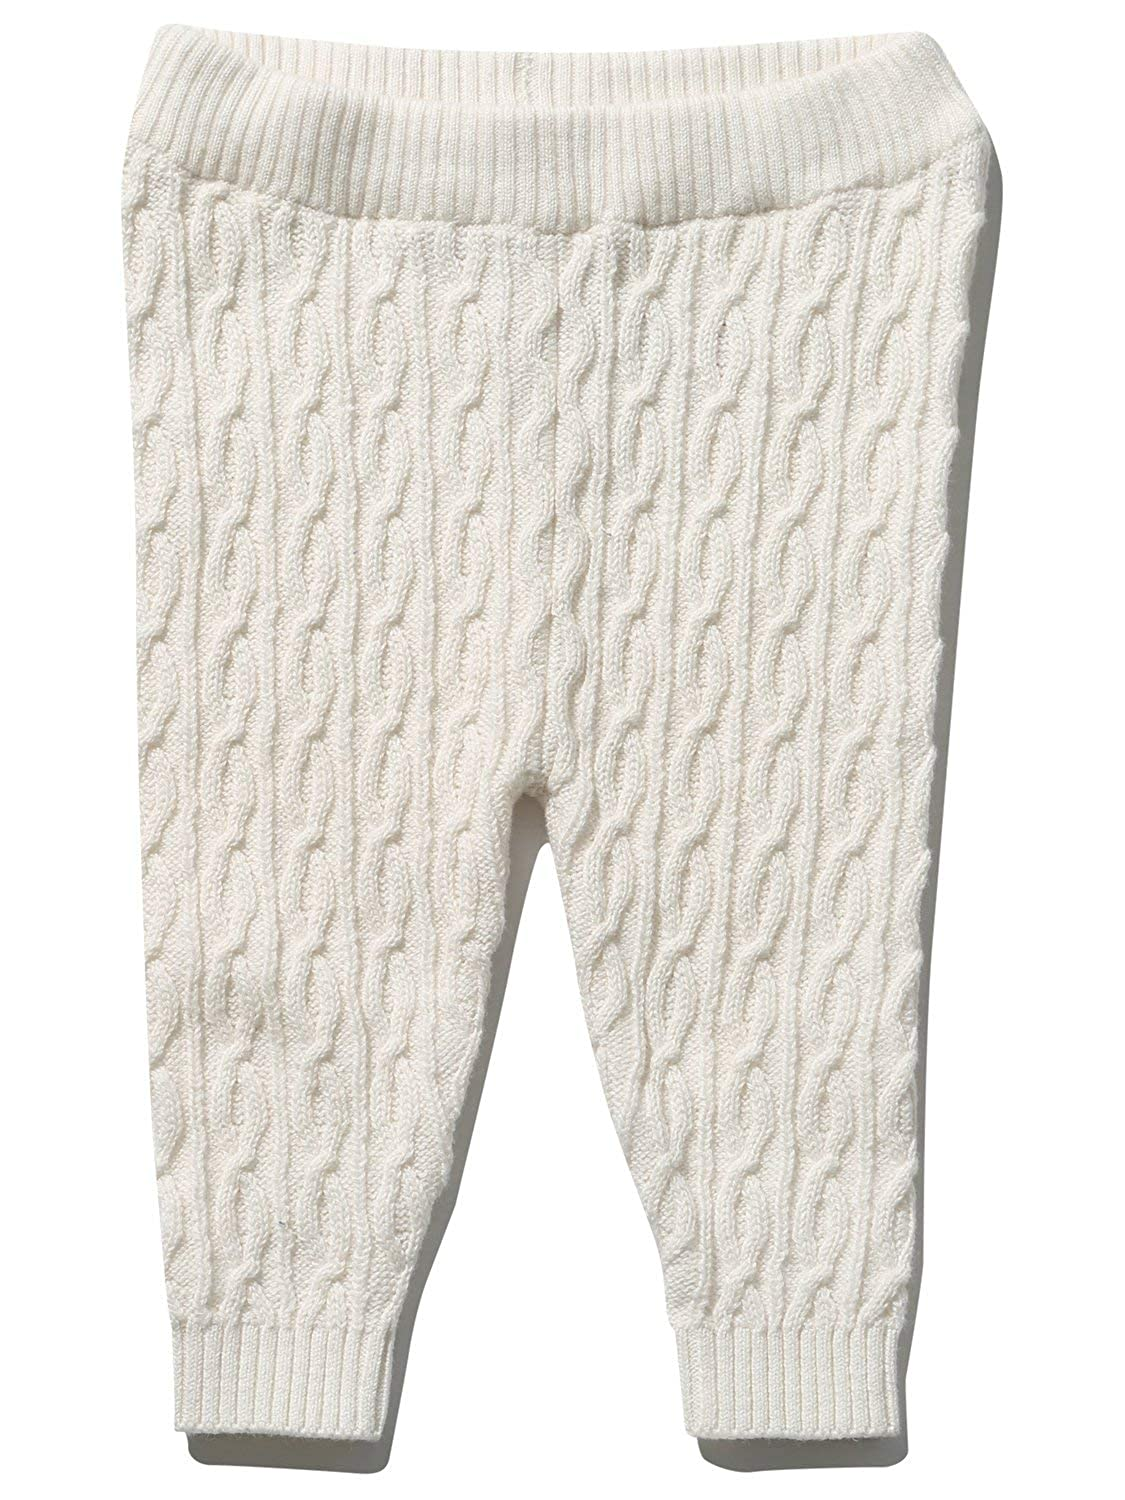 M& Co Baby Girl White Stretch Waist Cable Knit Finish Full Length Knitted Leggings